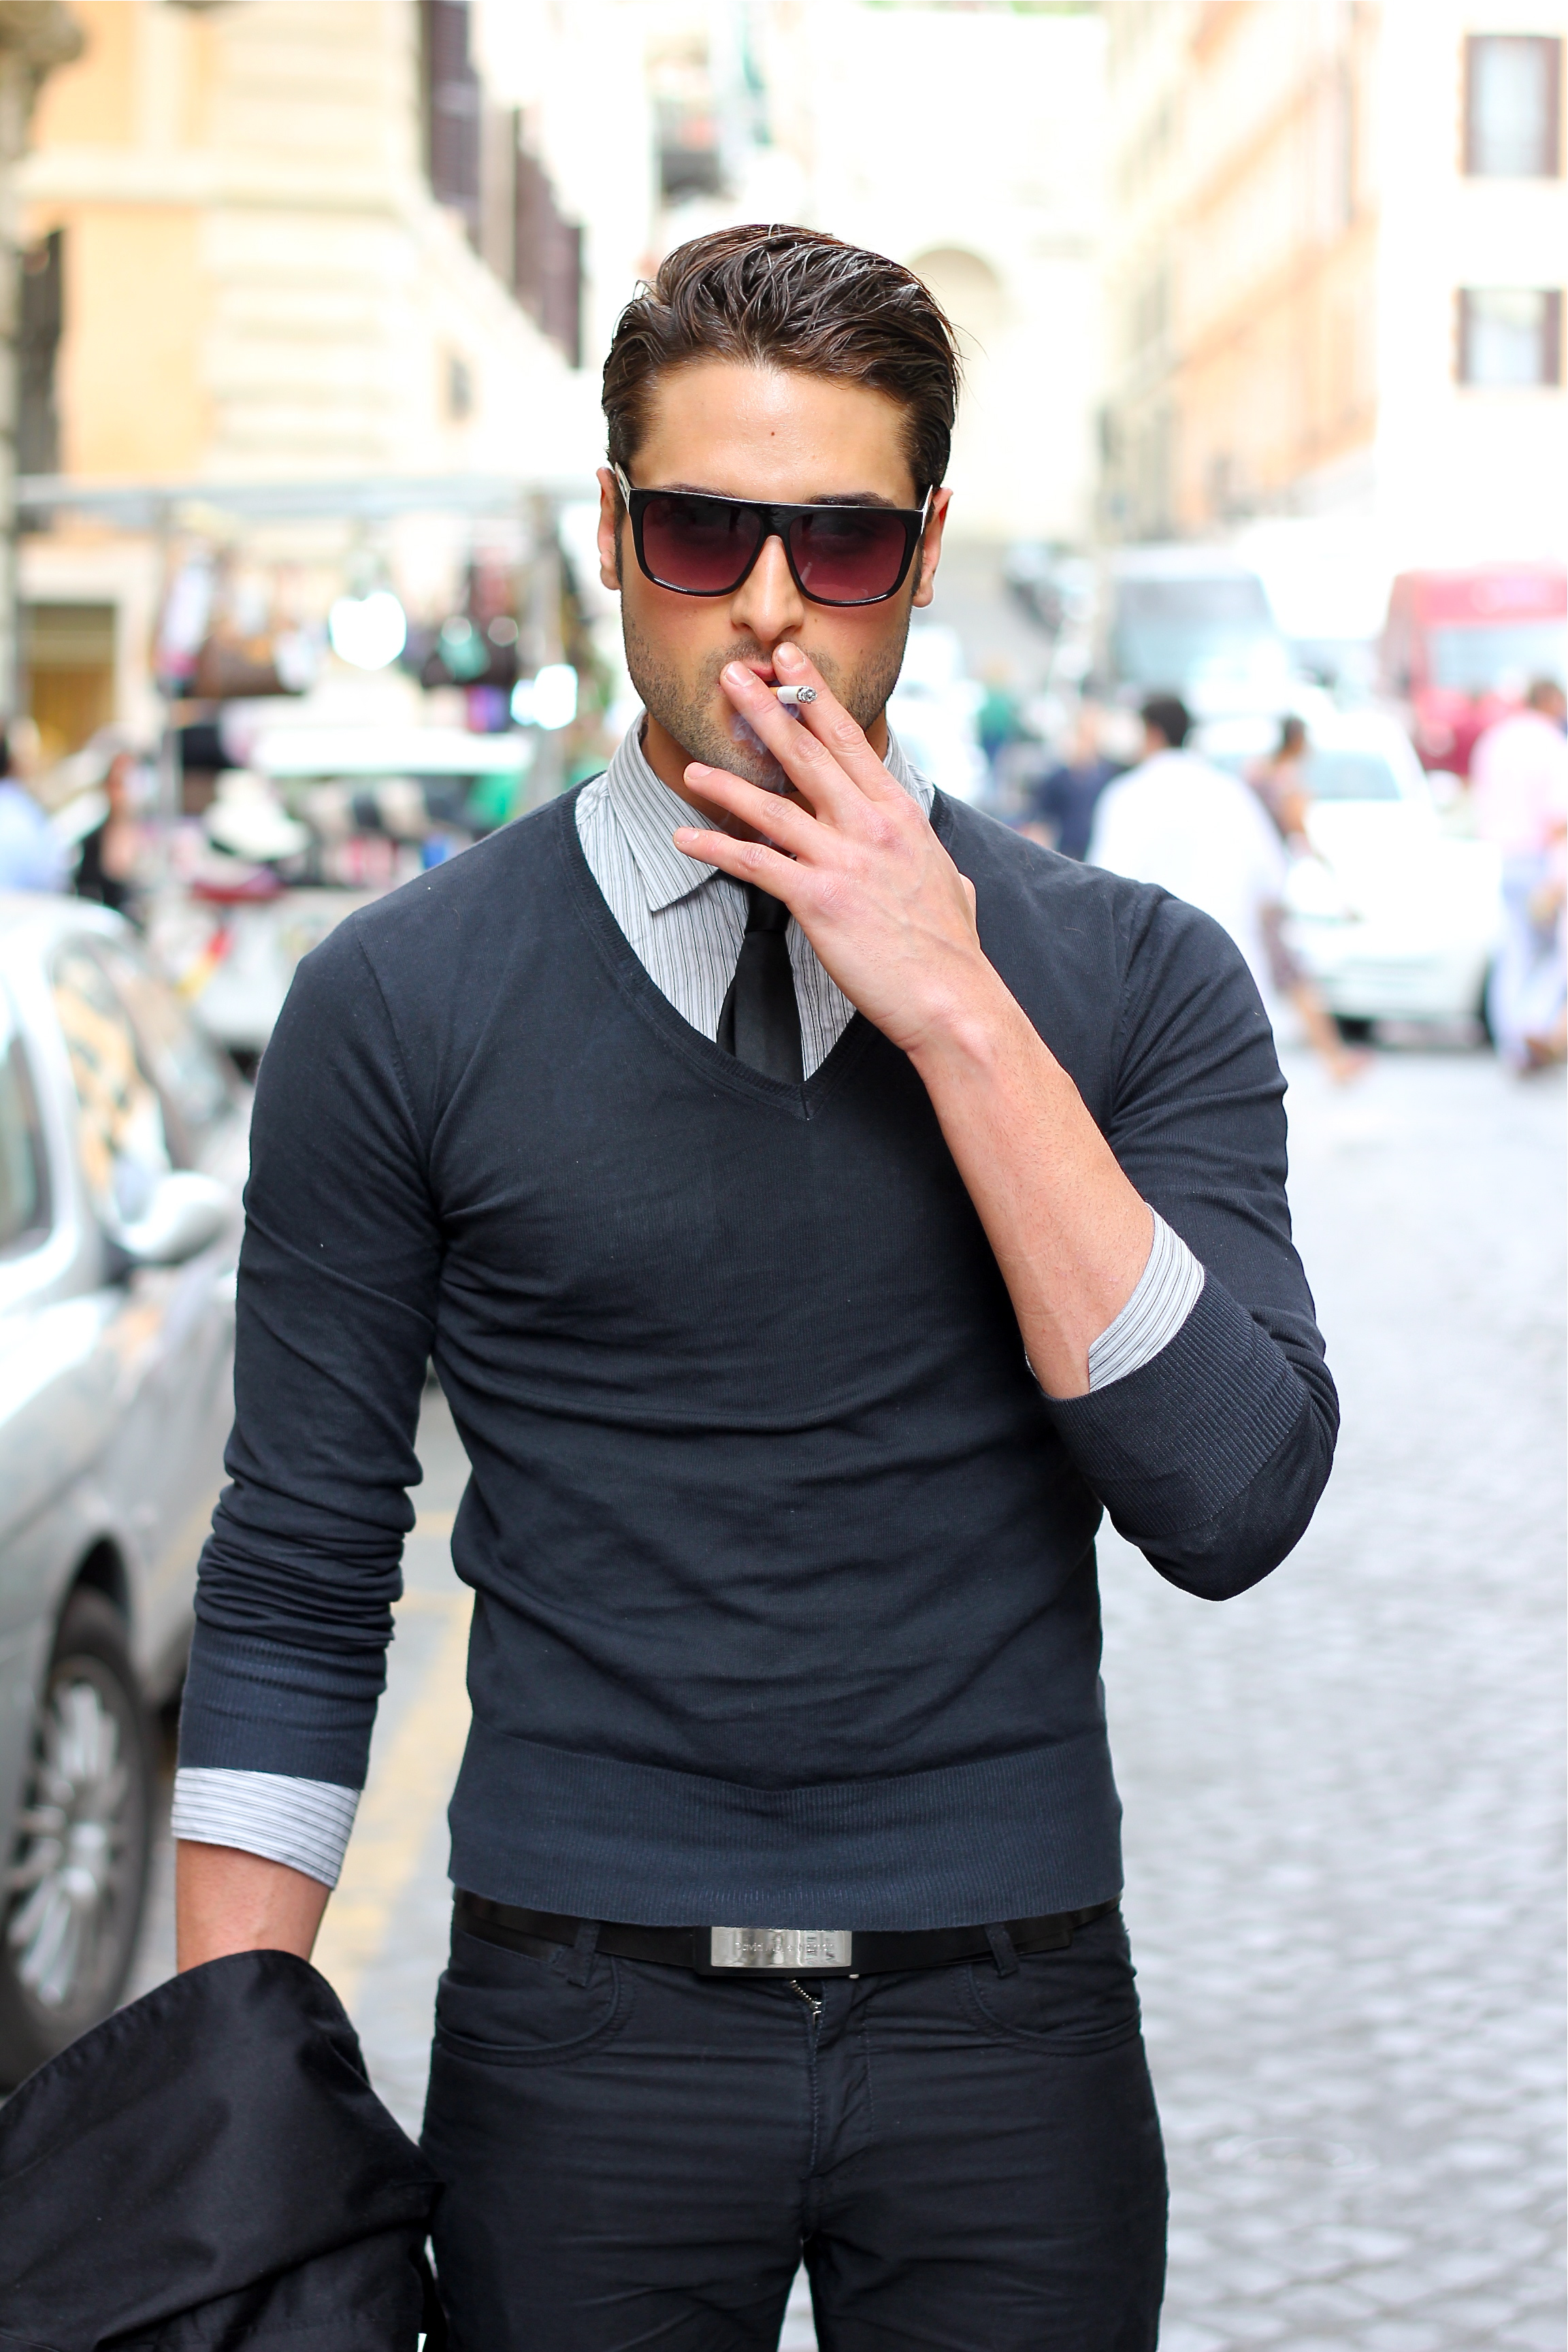 Find and save ideas about Men's fashion on Pinterest. | See more ideas about Man style fashion, Cloth style for man and Mens style wear.